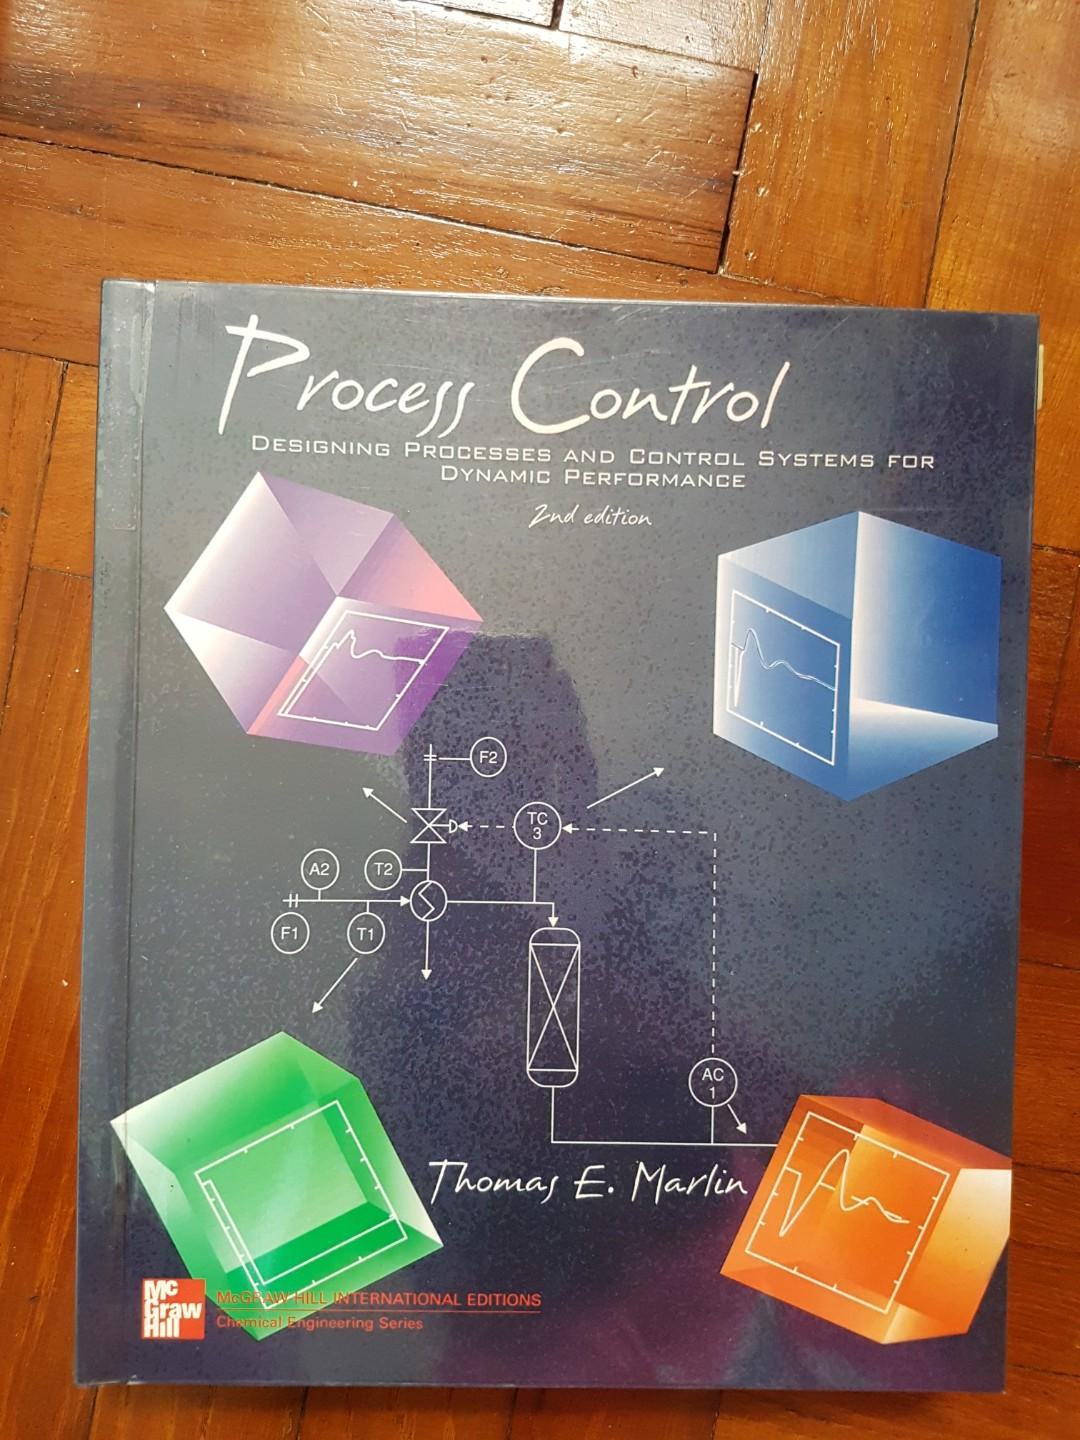 Process Control Thomas E Marlin Books Stationery Textbooks Professional Studies On Carousell